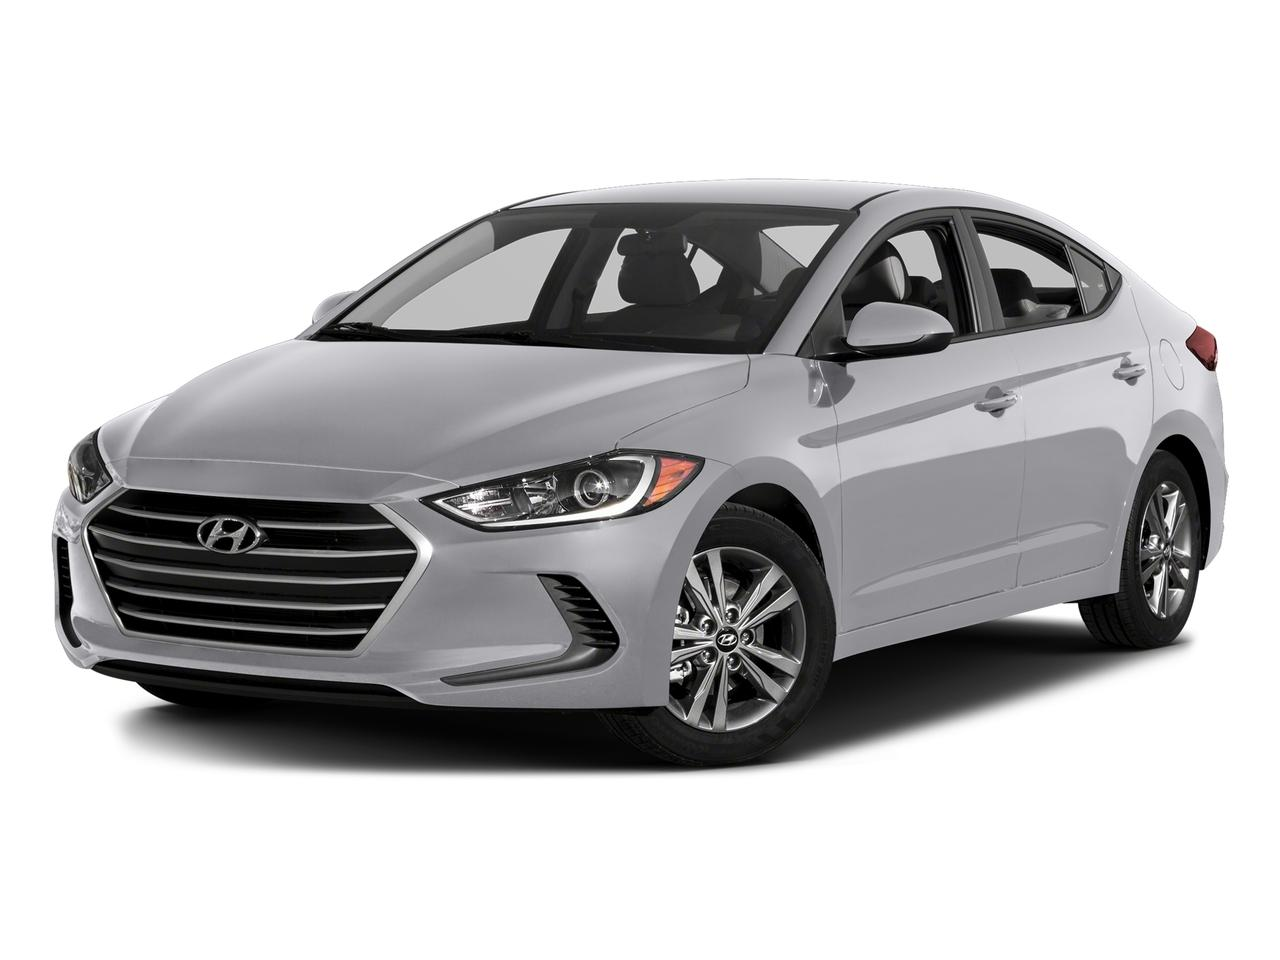 2018 Hyundai Elantra Vehicle Photo in Twin Falls, ID 83301